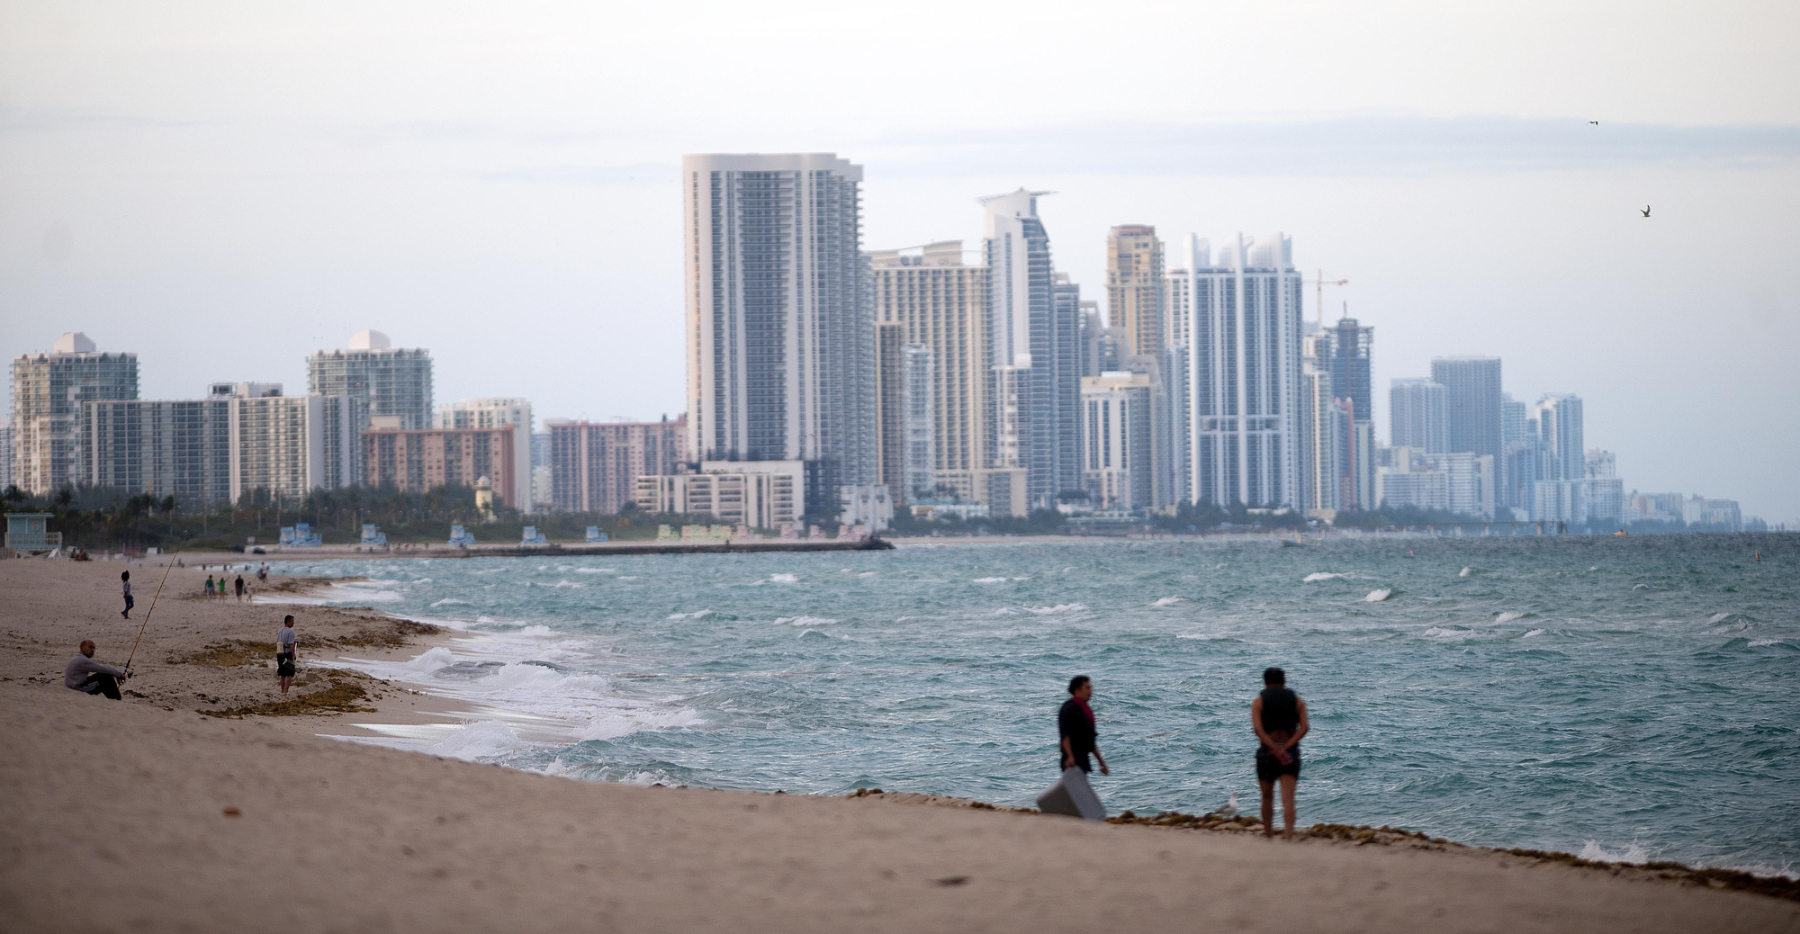 People stand on the shore in front of the skyline of Miami Beach, Florida, U.S., on Wednesday, Feb. 20, 2013. Photographer: Ty Wright/Bloomberg